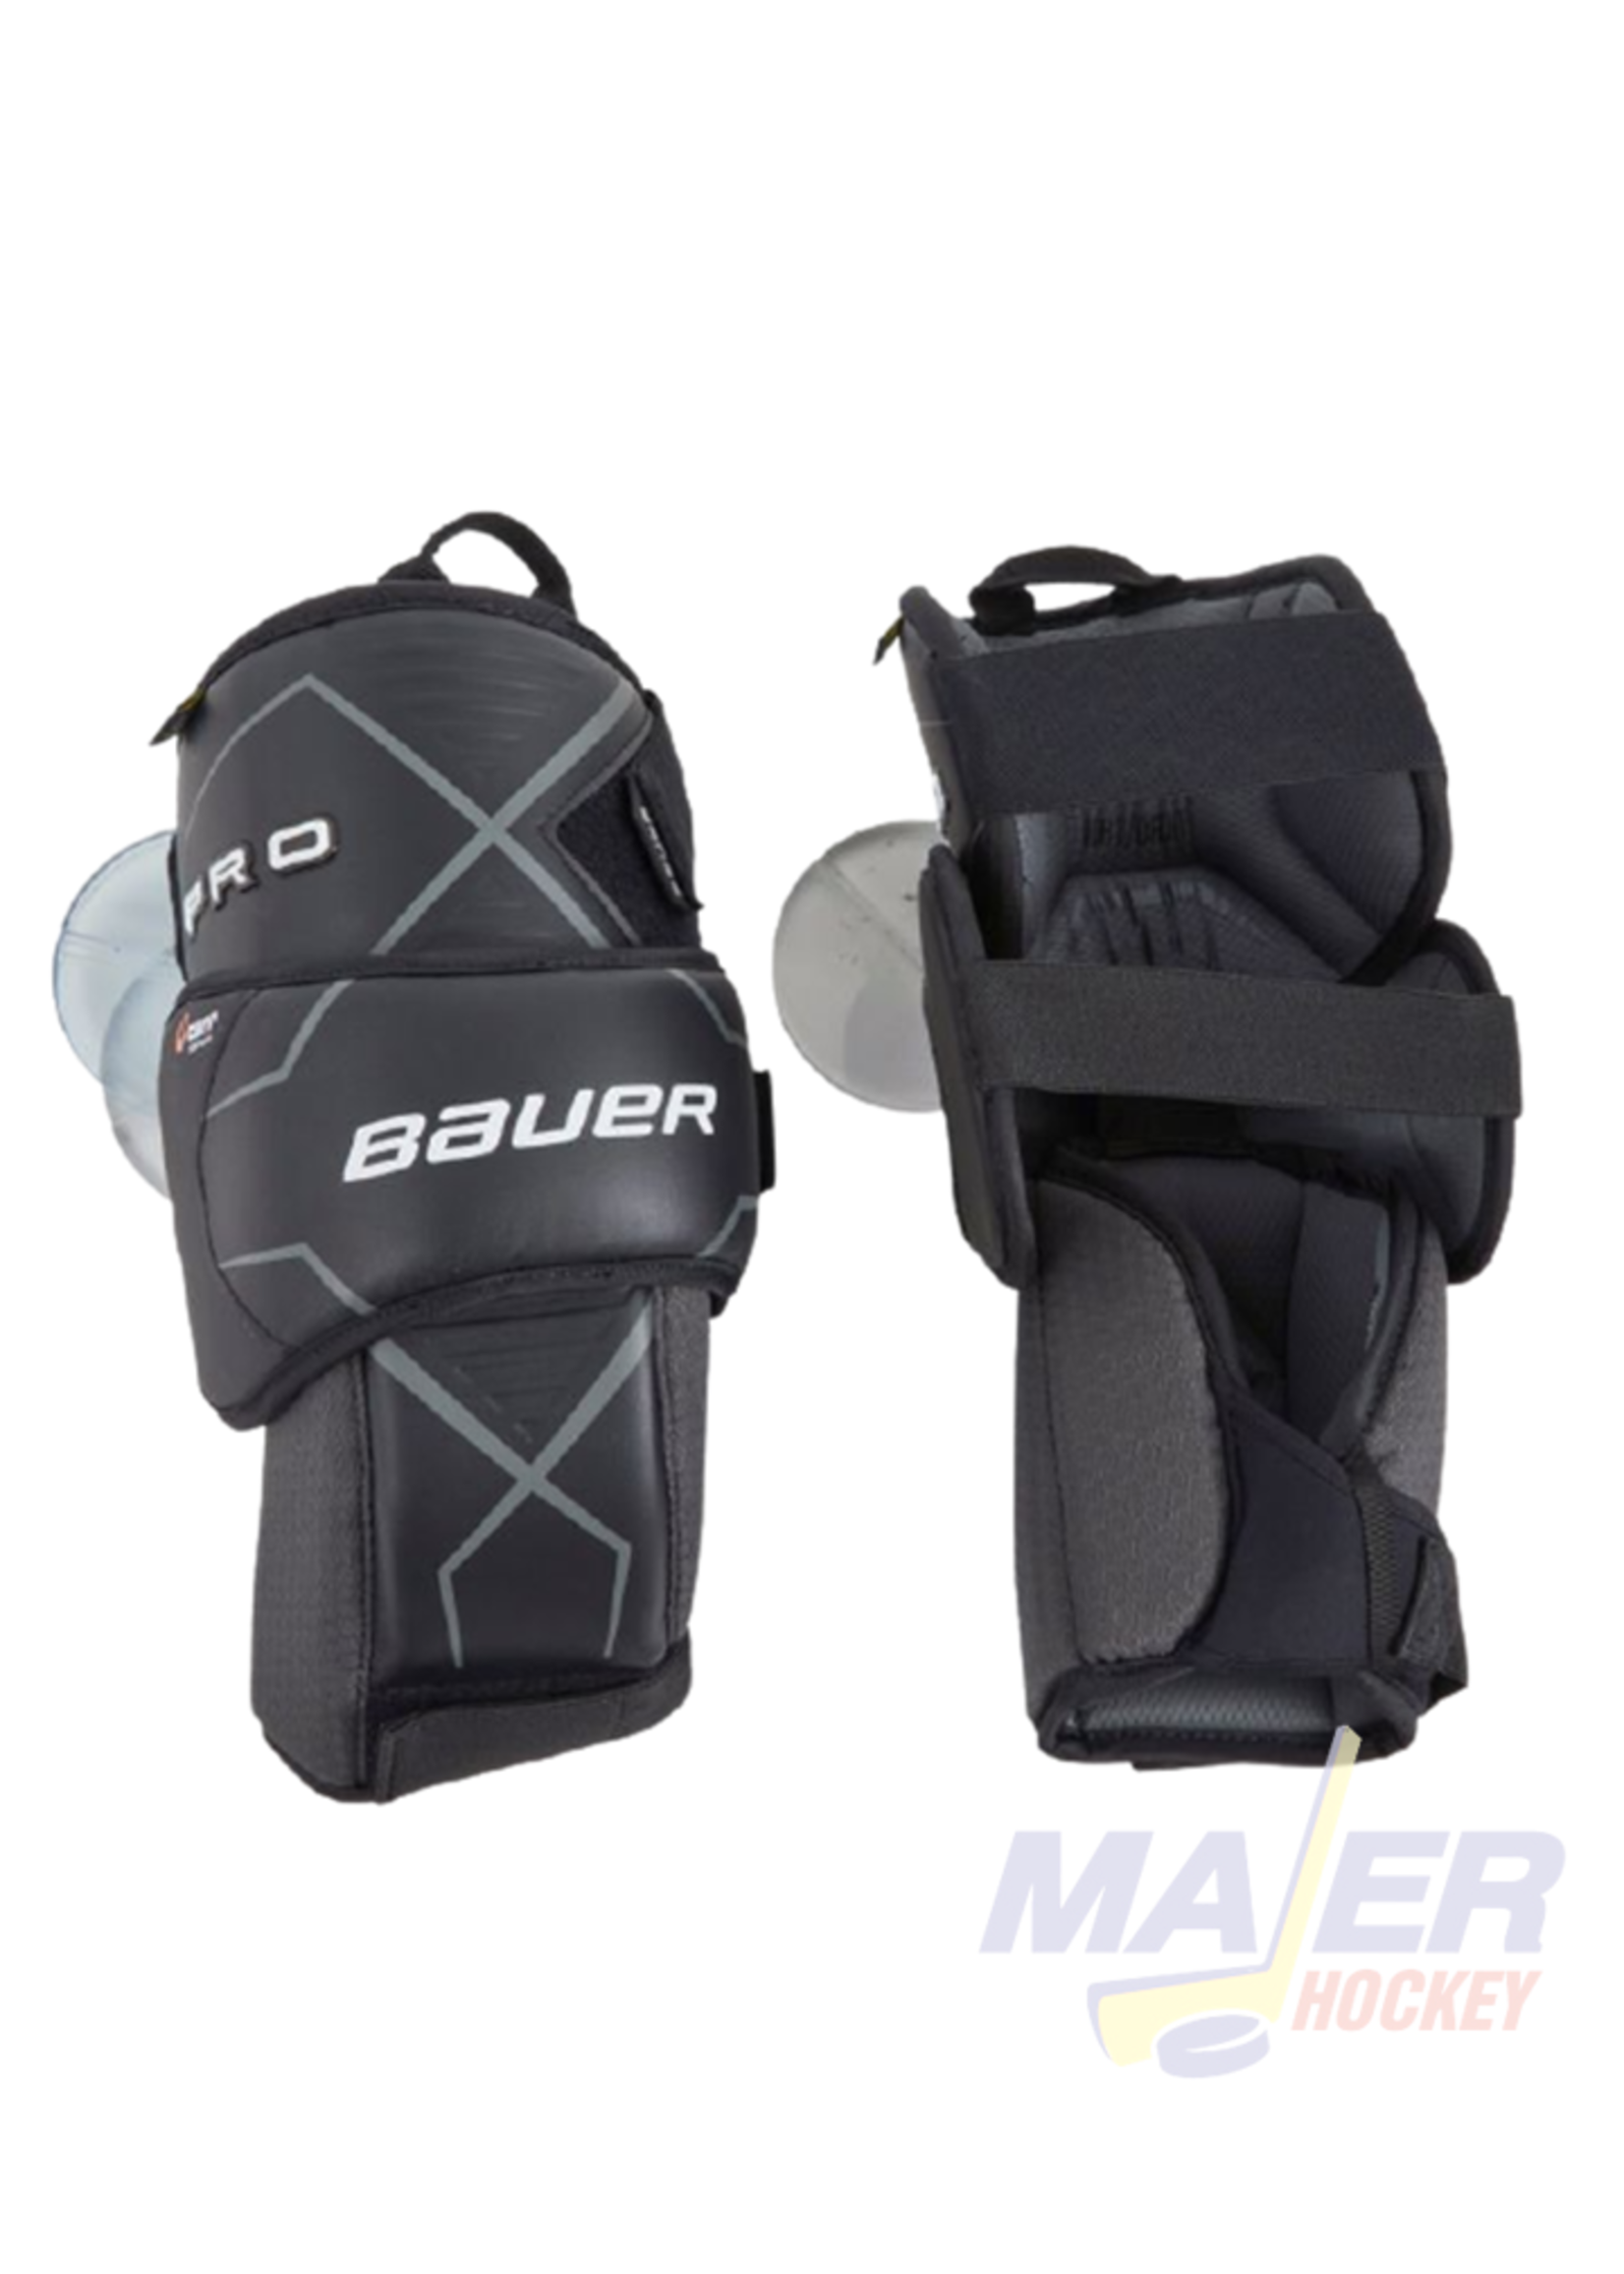 Bauer Pro Int Knee Guards